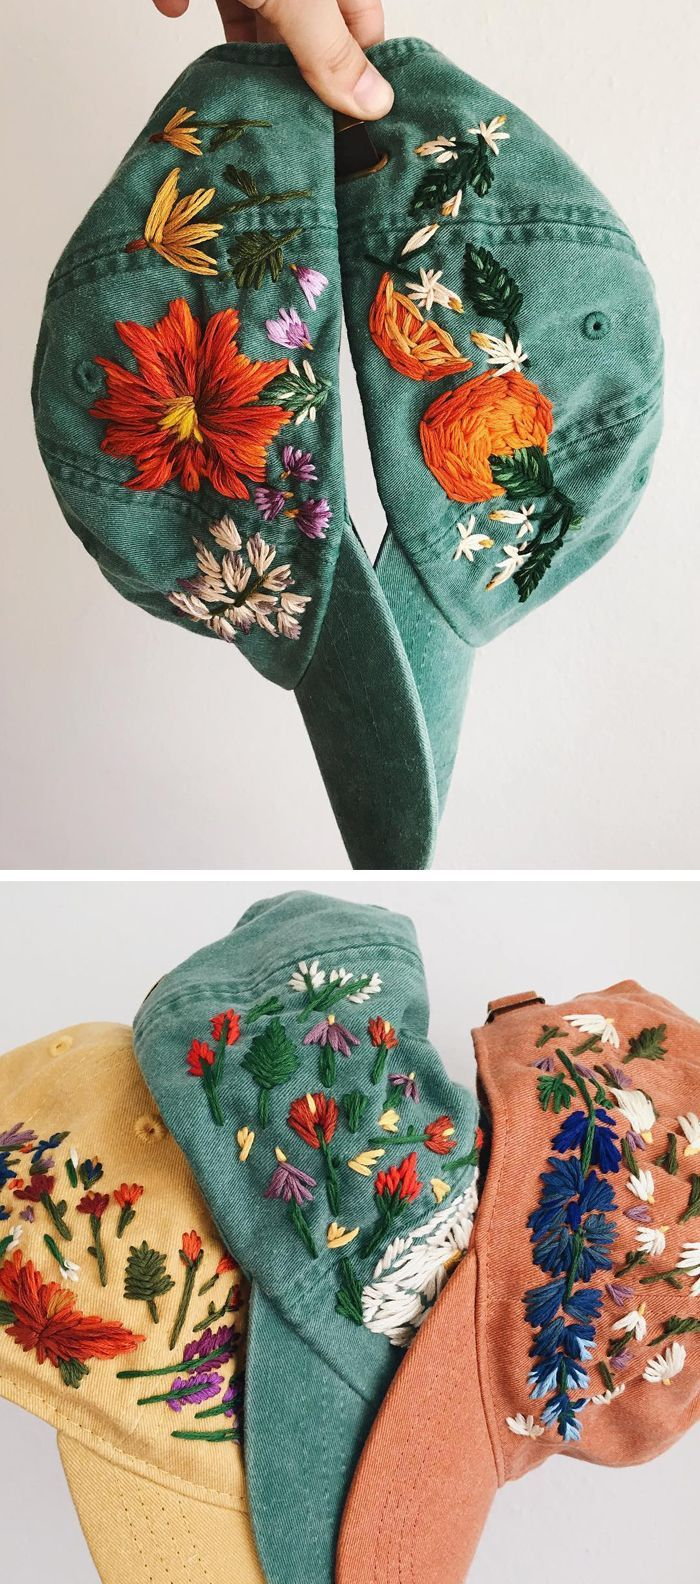 ace3ea66ea4 Hand-Embroidered Hats Let You Root for Your Favorite Team... Flowers ...